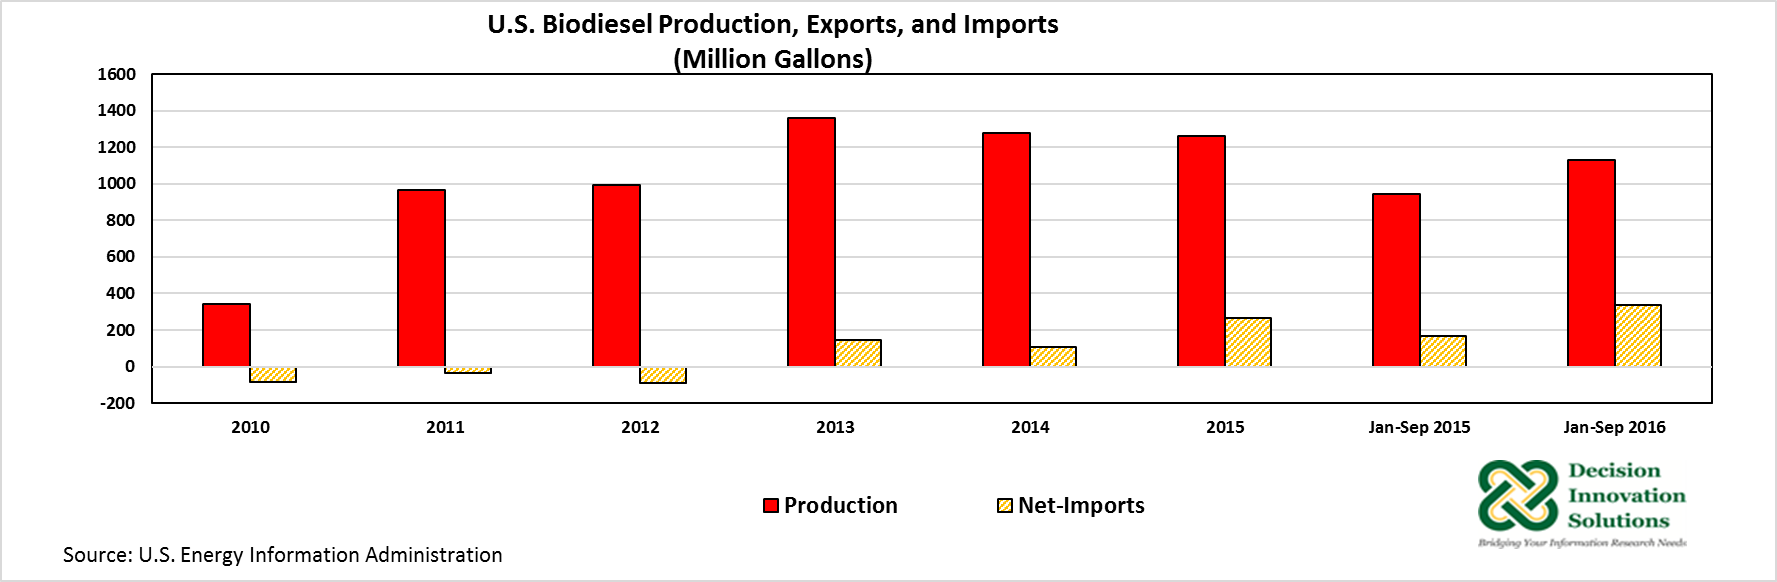 biodiesel production, exports and imports